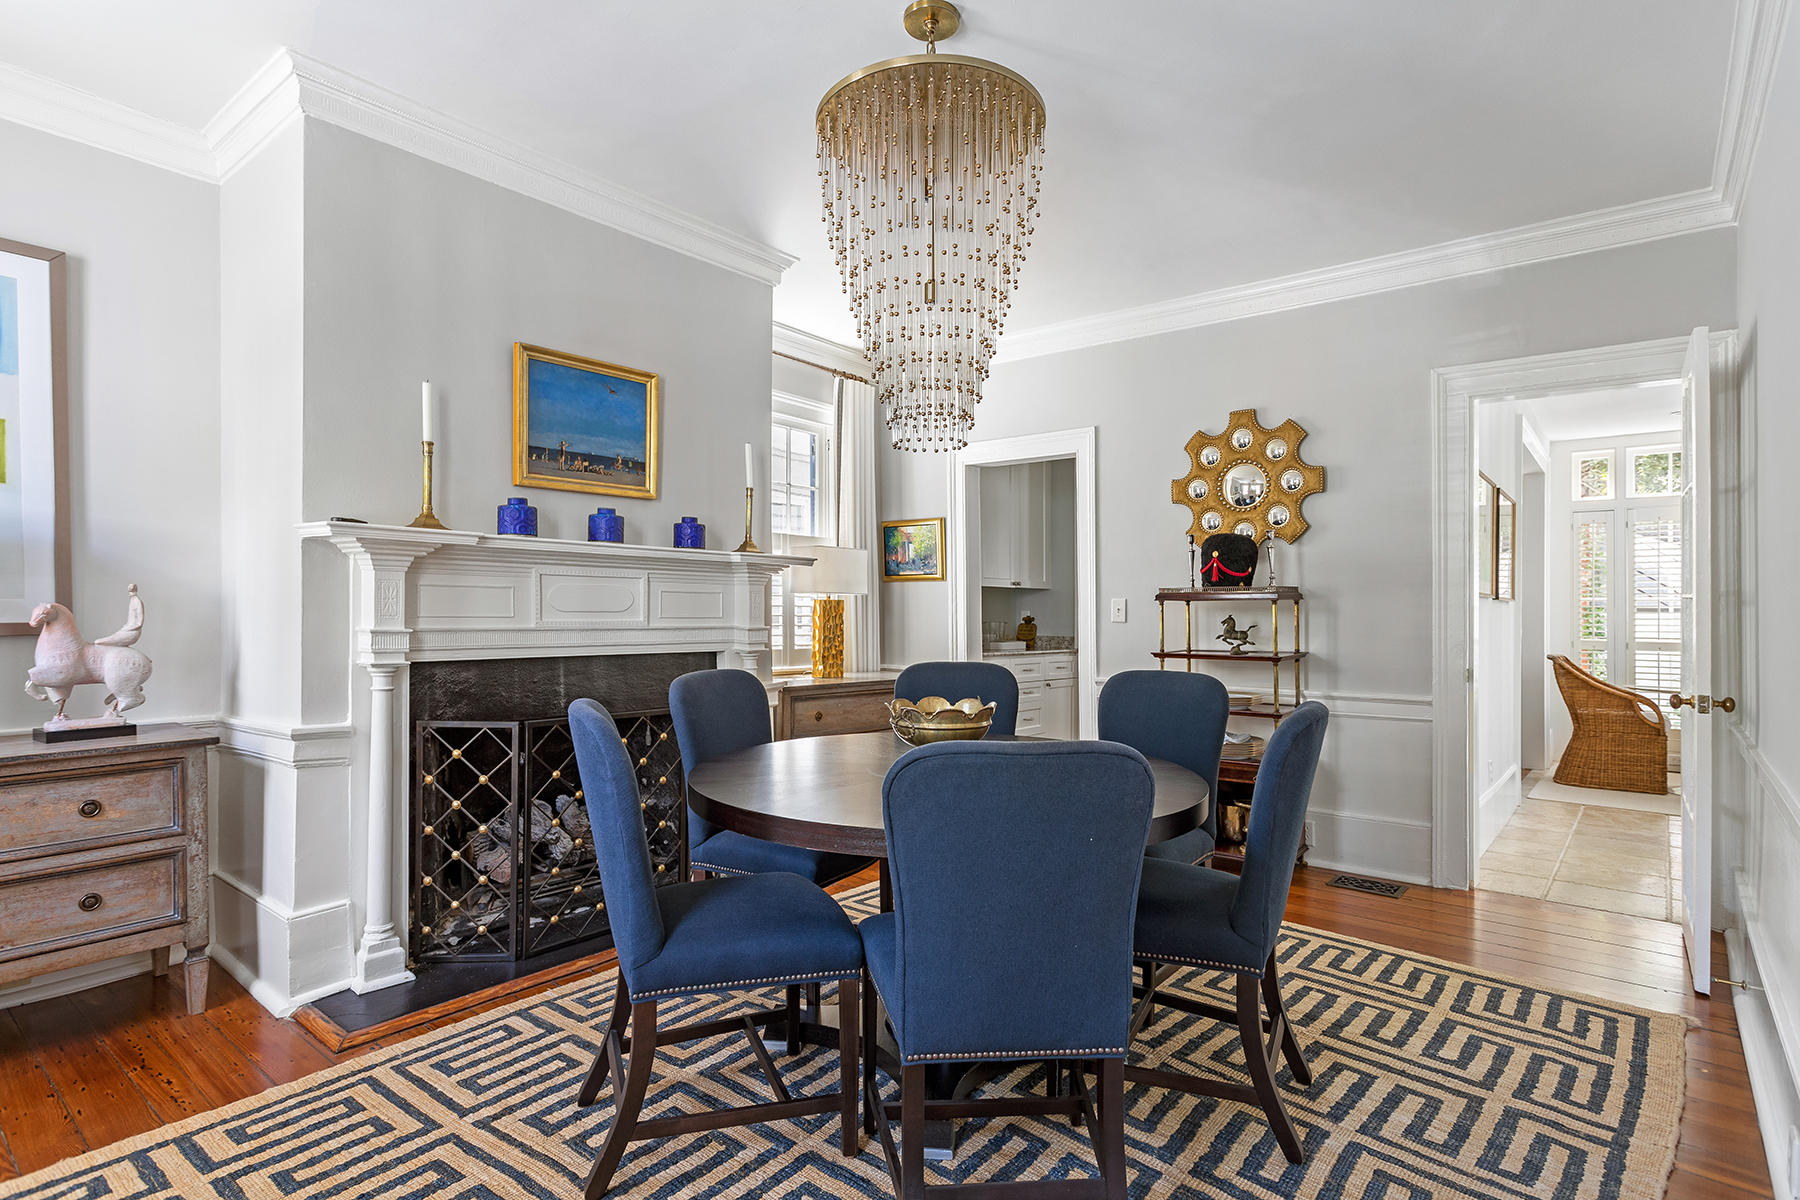 South of Broad Homes For Sale - 3 Atlantic, Charleston, SC - 0